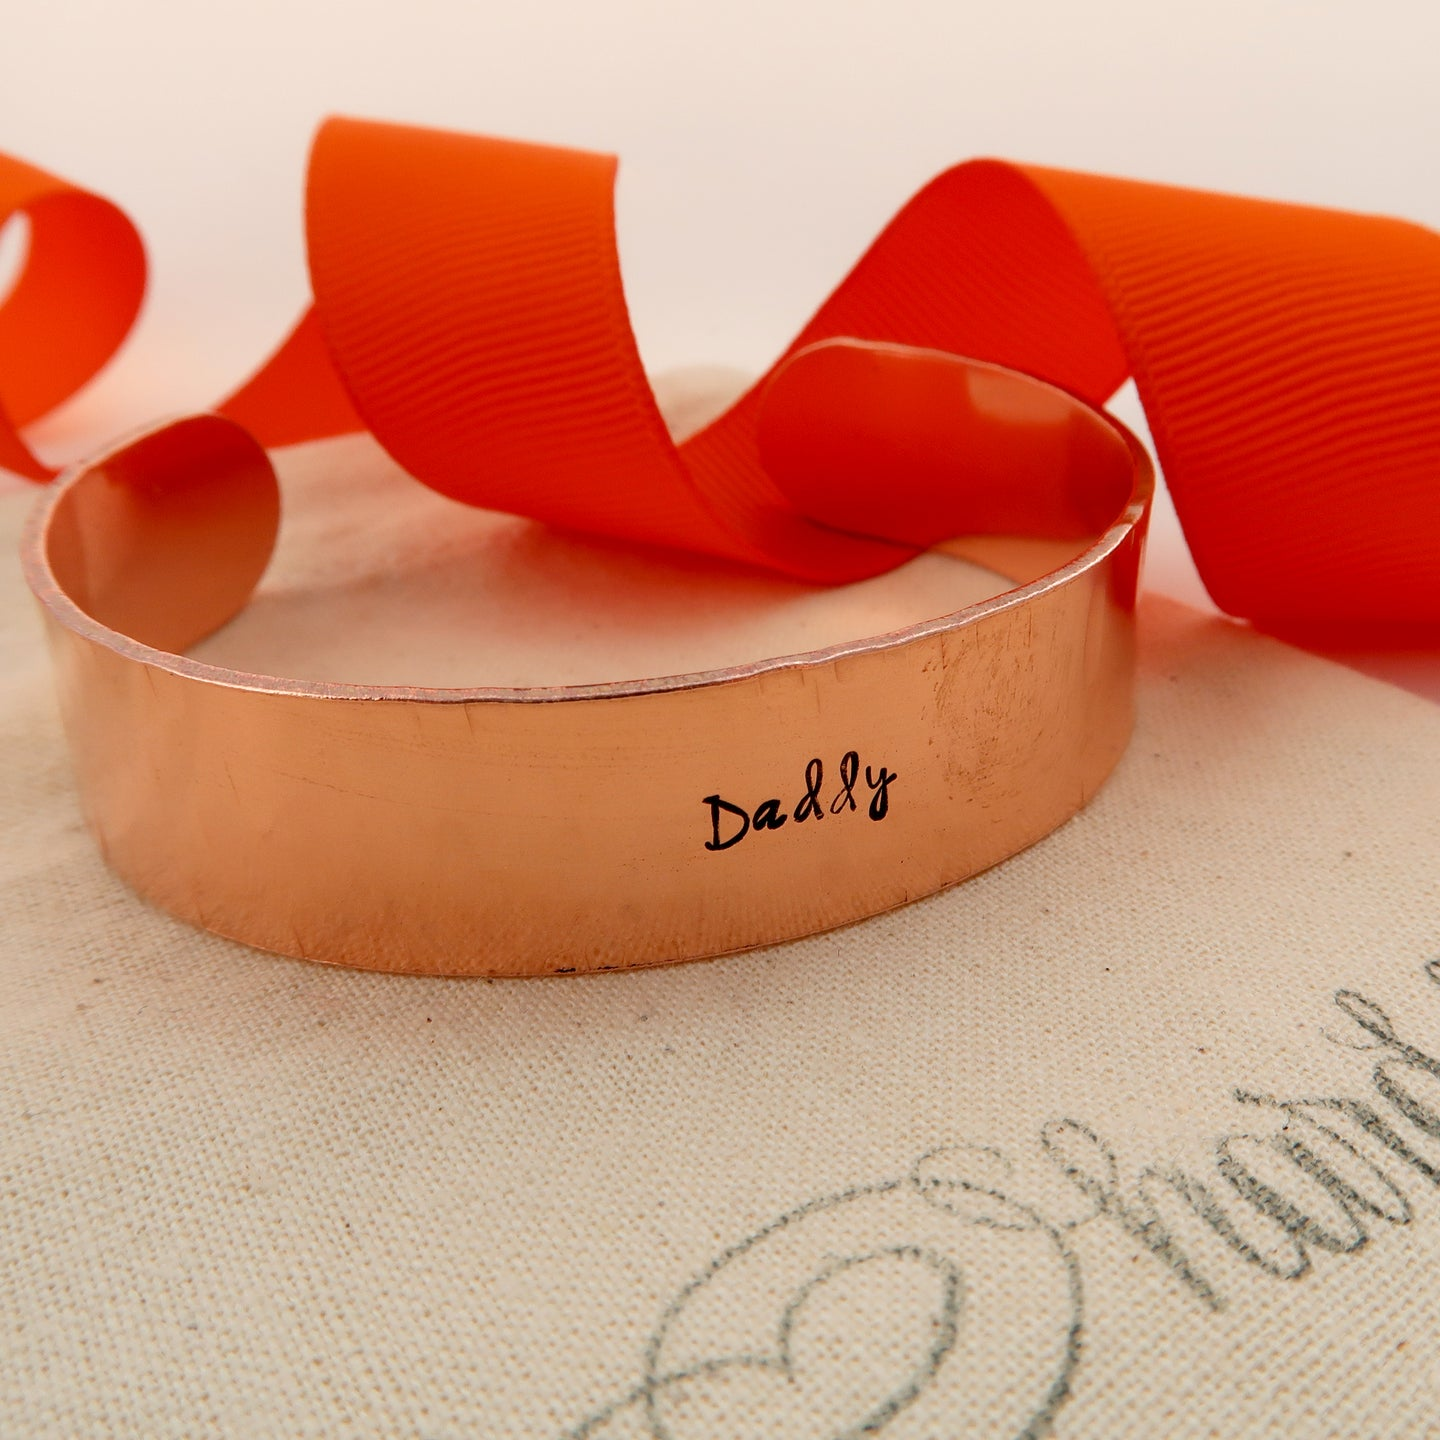 personalised copper cuff bracelet made in wales uk by elfen hardd